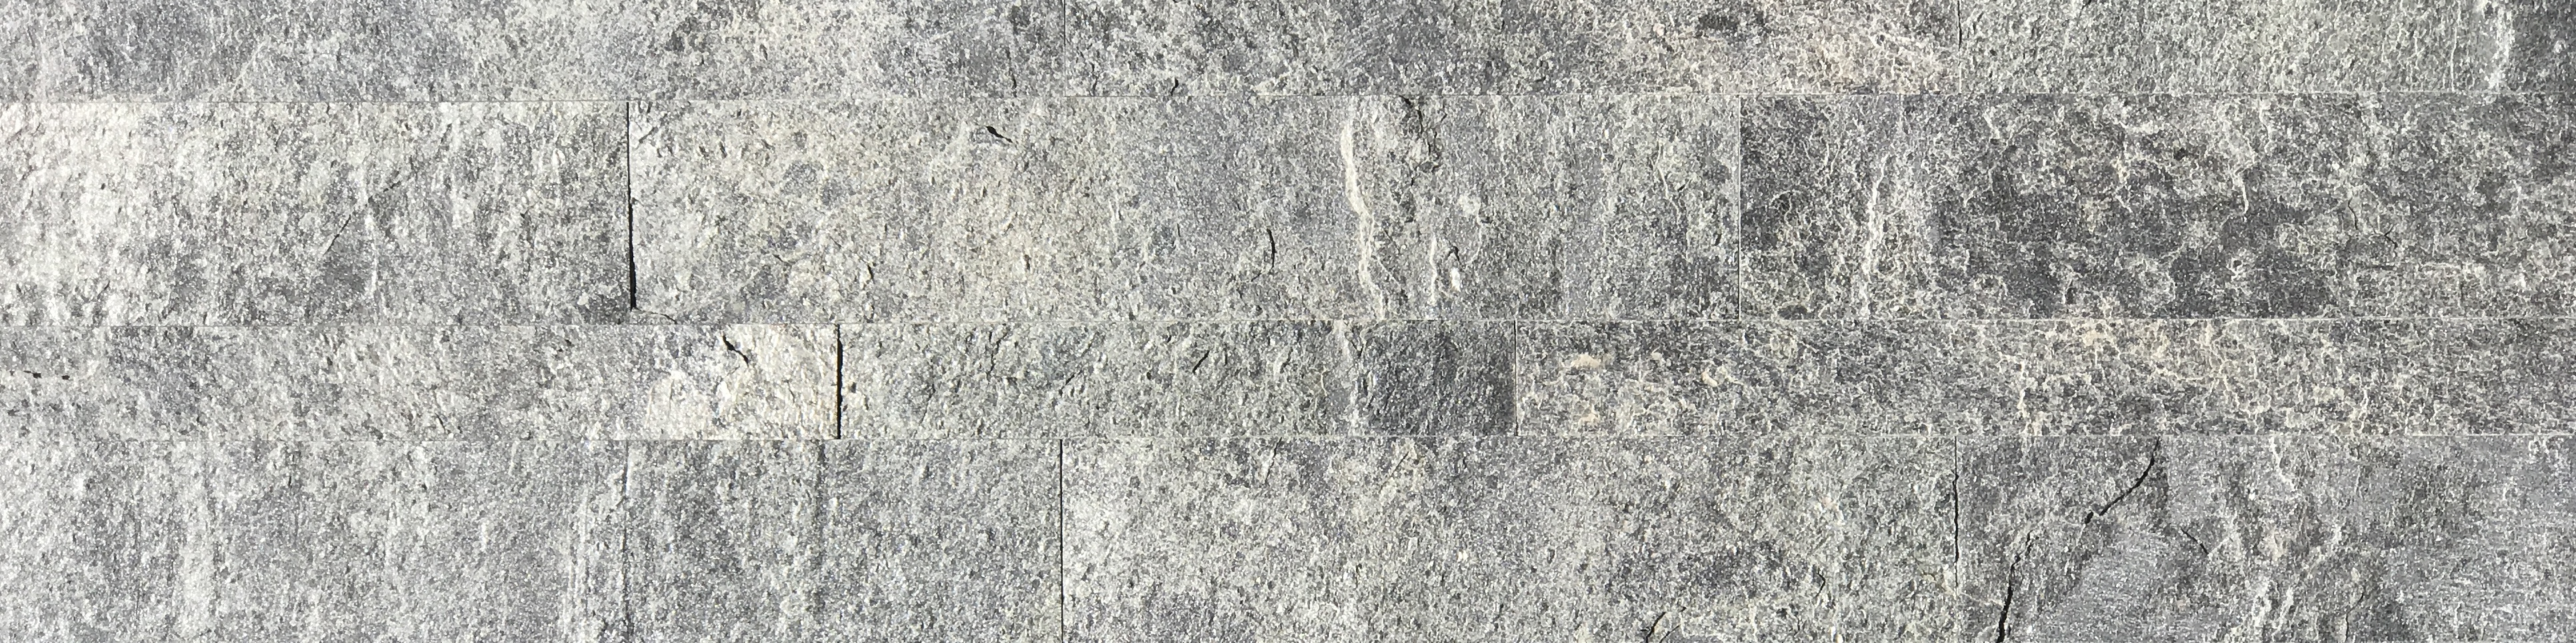 Amazon Slimline Ledgestone Panel Image